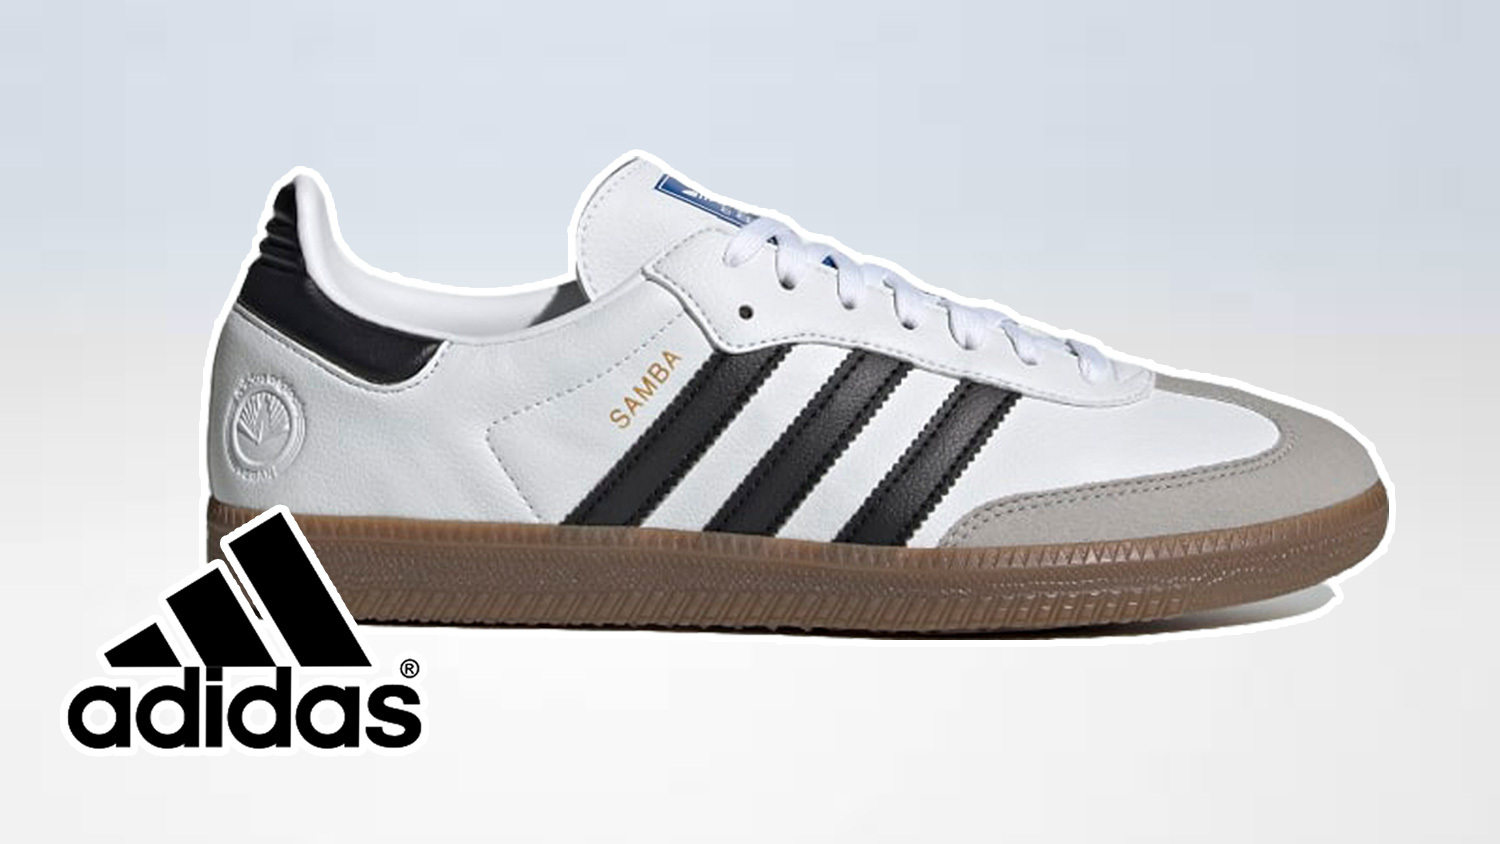 Adidas Is Slowly Turning Its Classic Leather Shoe Collection Vegan